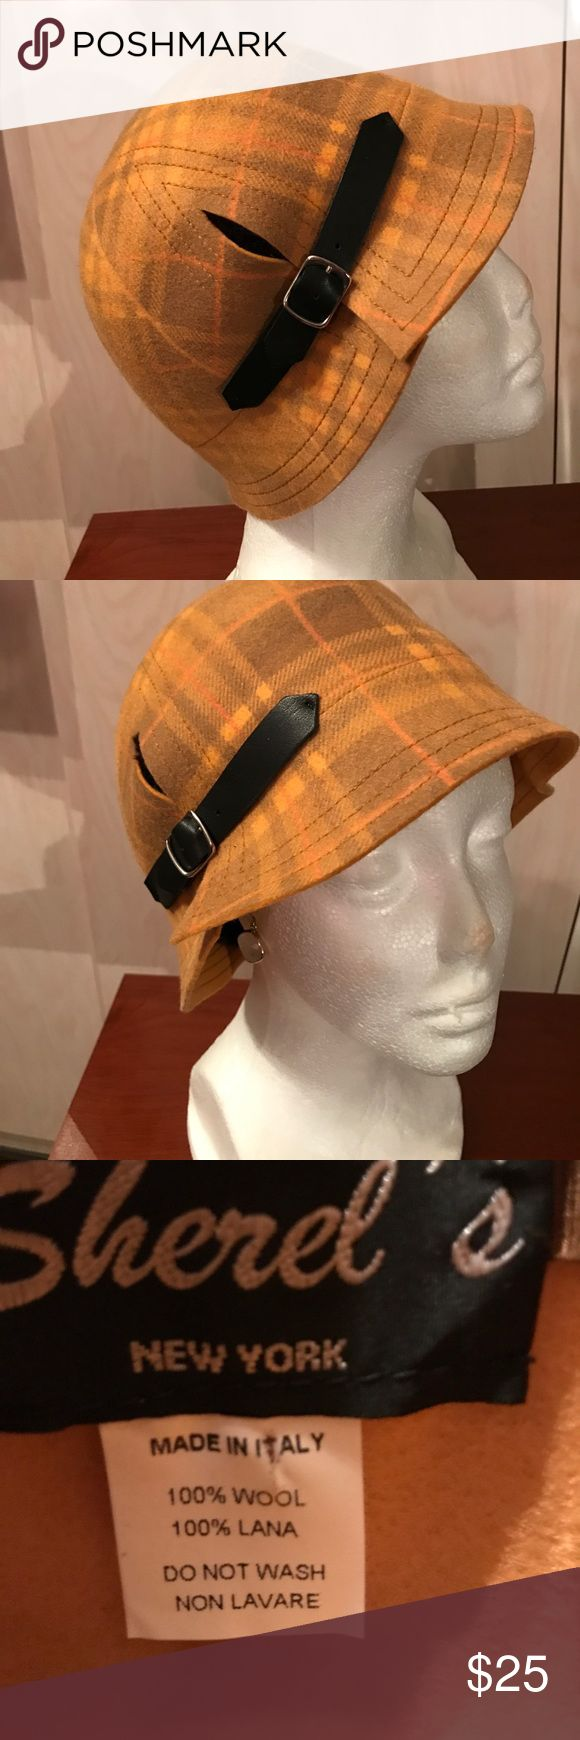 Very trendy made in Italy wool hat! Brand new! Very trendy made in Italy 100% wool hat! Brand new! Accessories Hats